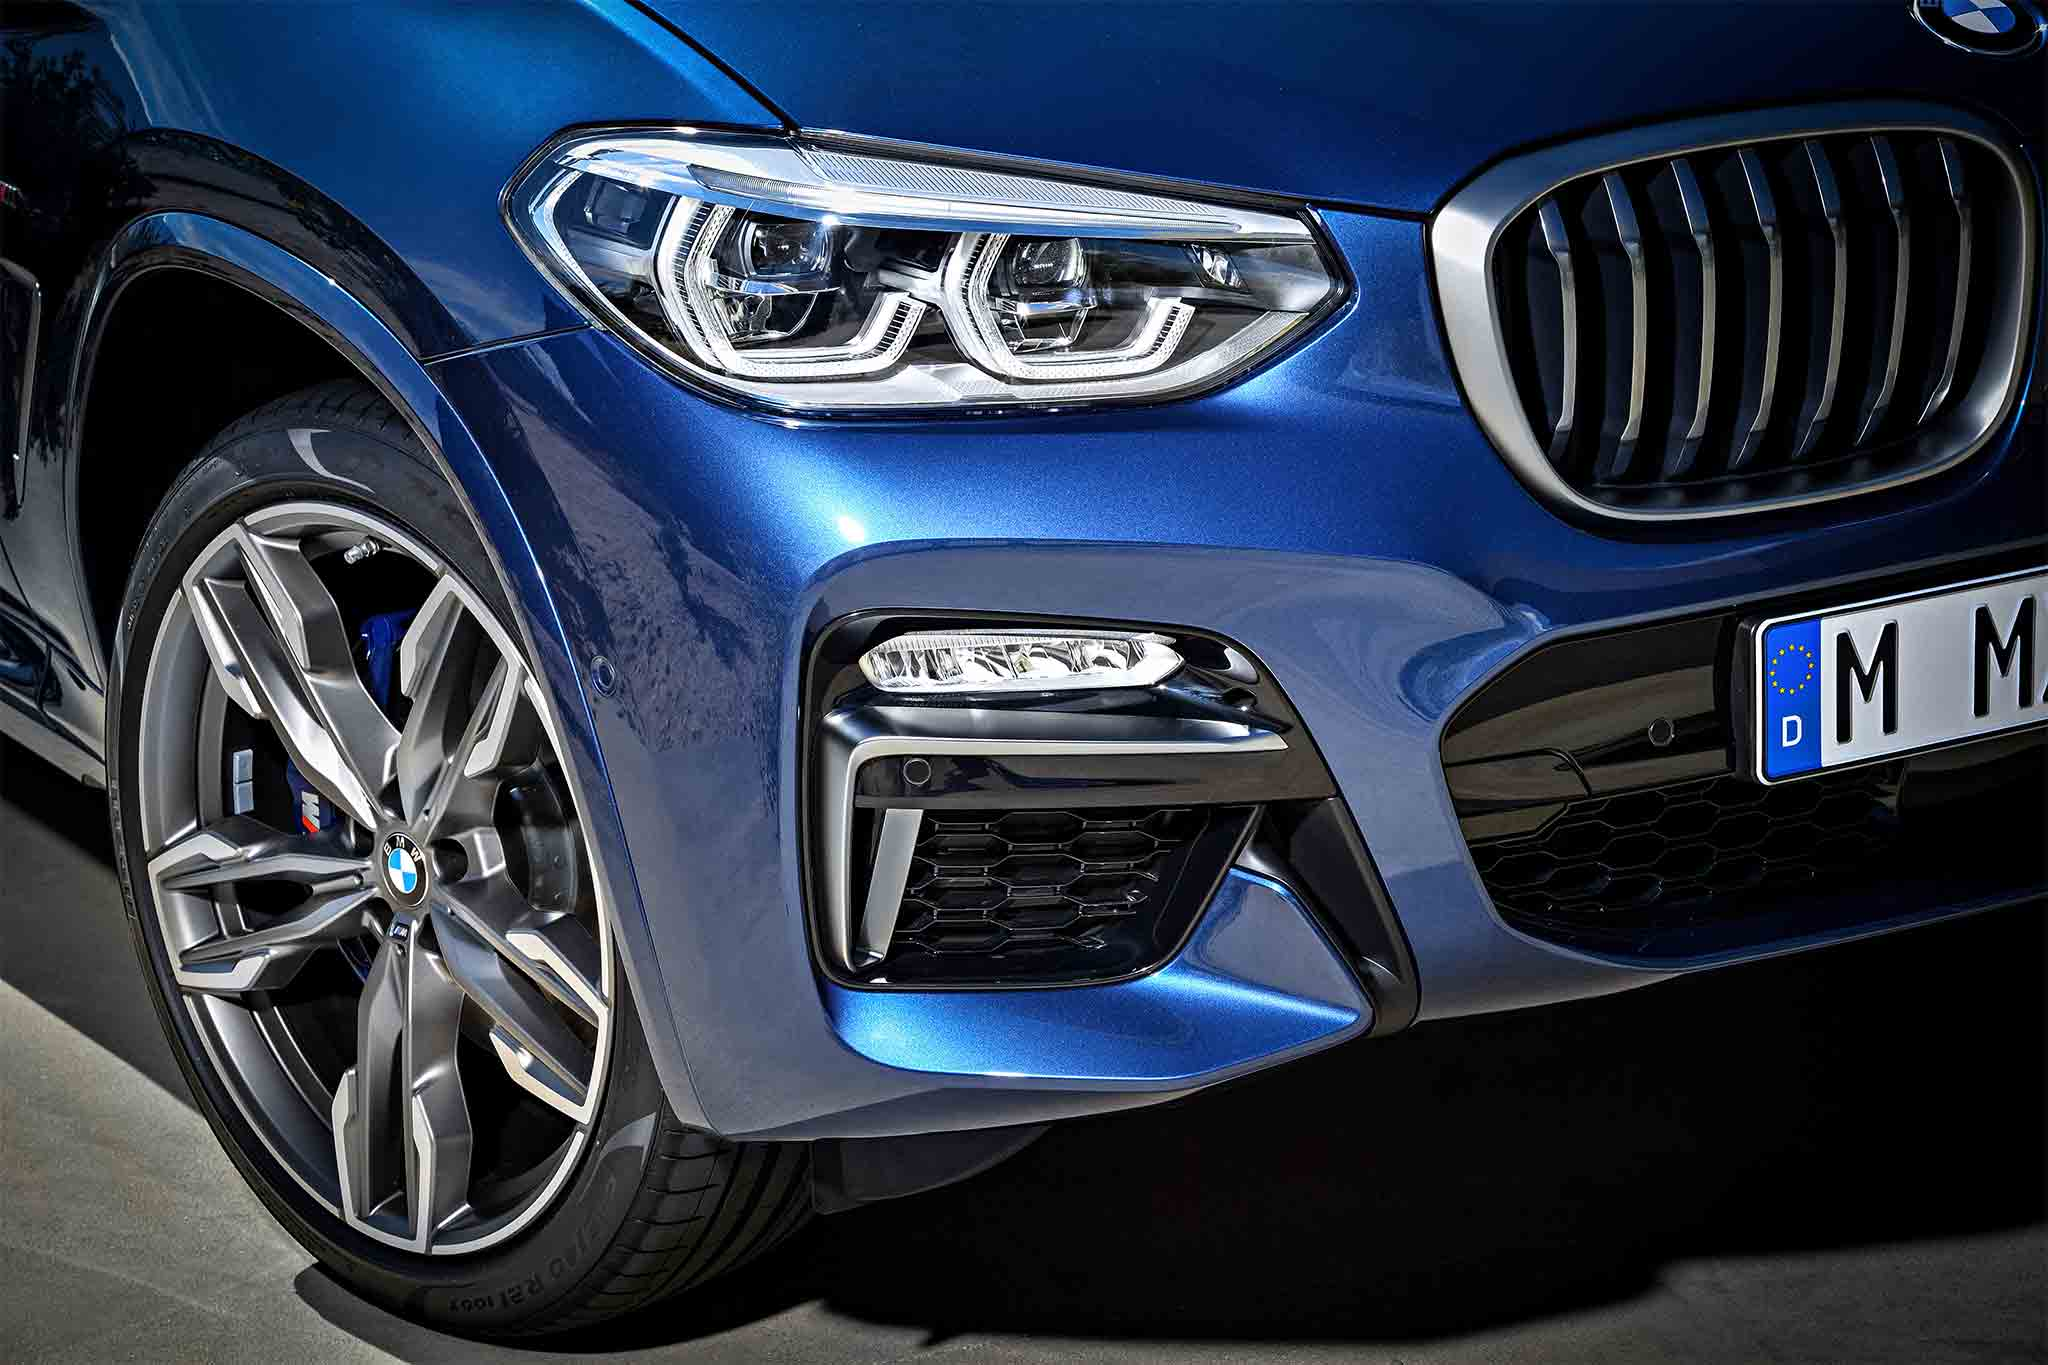 2018 Bmw X3 Revealed With Performance Oriented M40i Trim